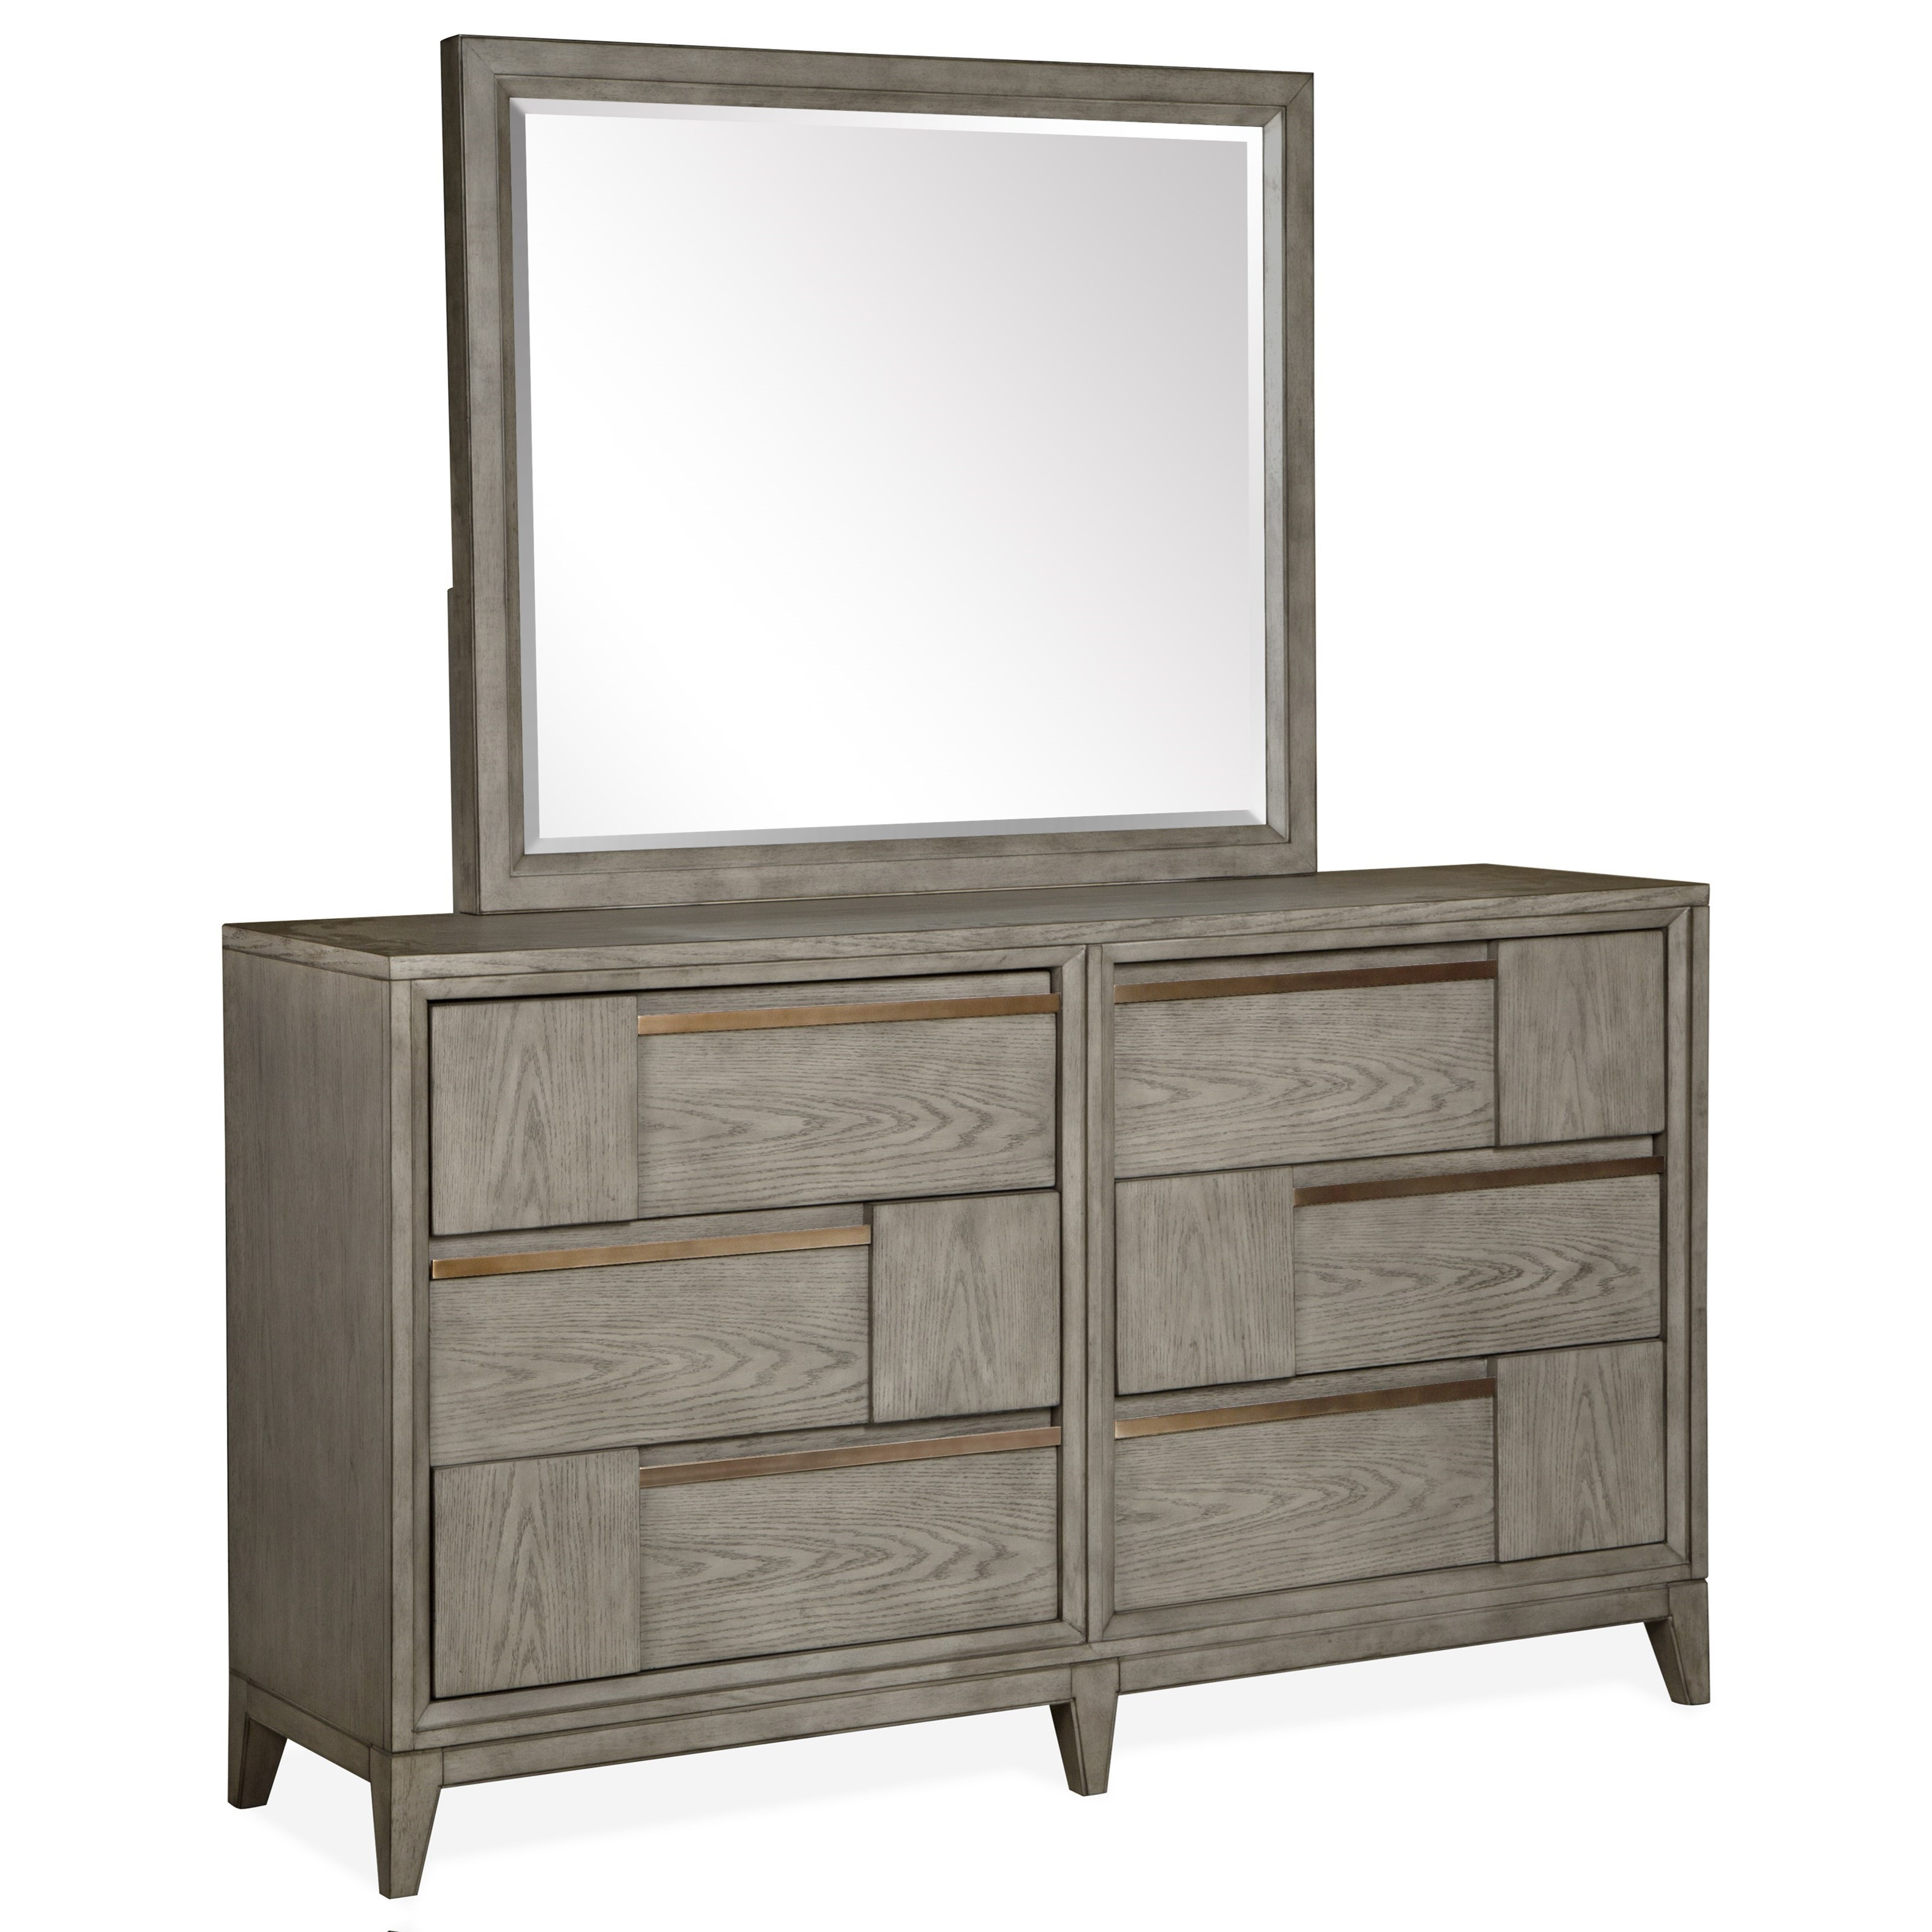 Atelier Dresser and Mirror Combination by Magnussen Home at Value City Furniture